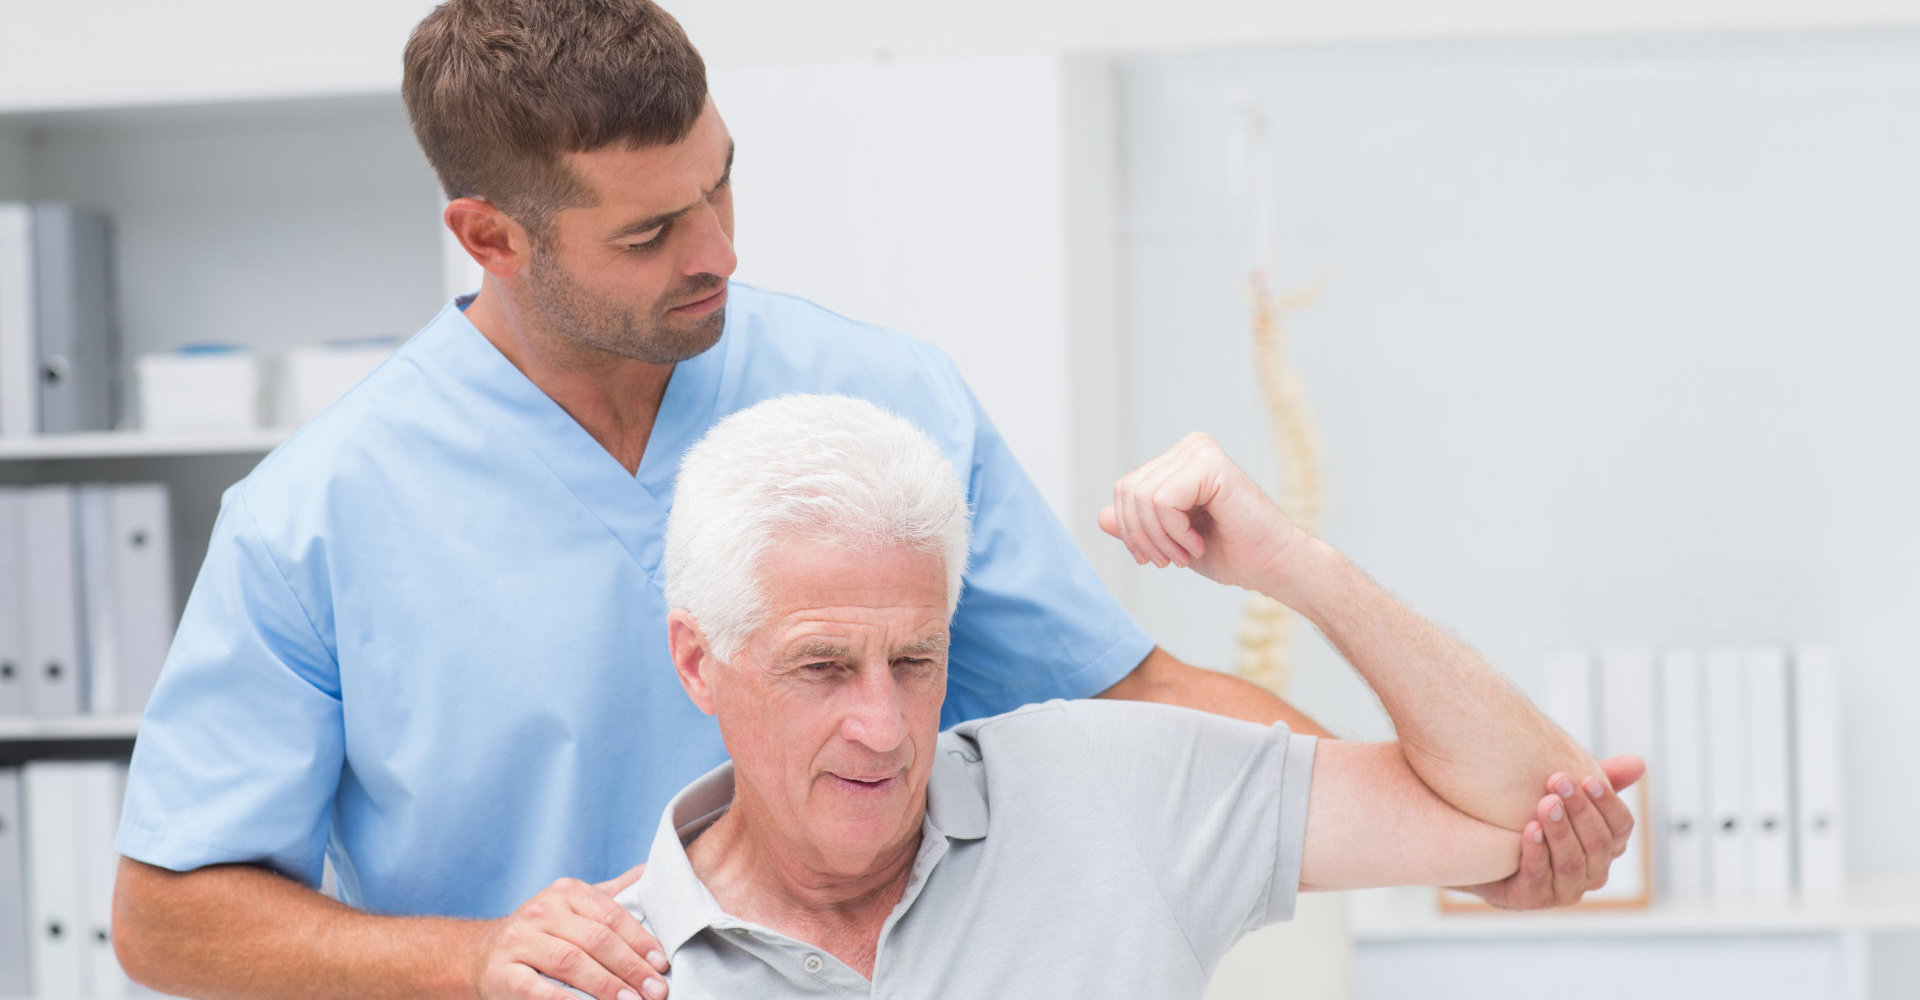 caregiver assisting patient in lifting his arm